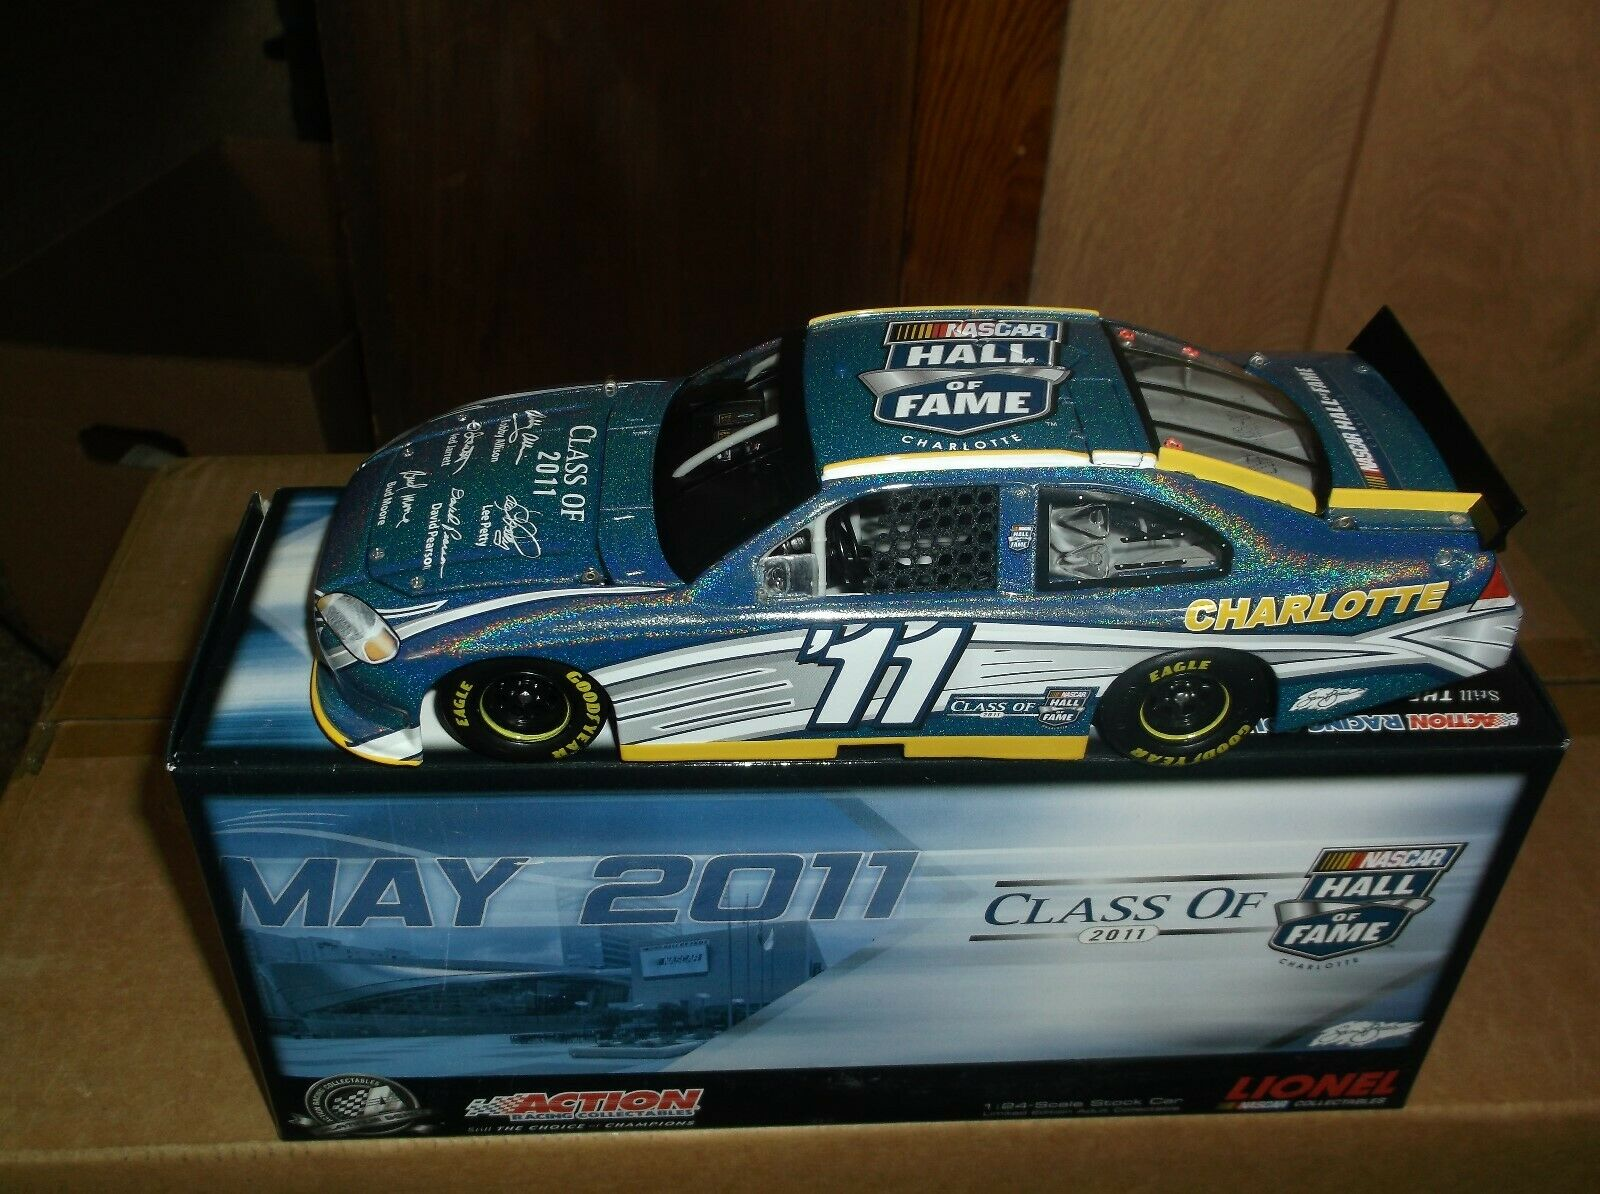 RARE 2011 5 5 5 INDUCTEES HALL OF FAME FLASHCOAT Coloreeeee 1 24TH SCALE DIECAST 5af0ae